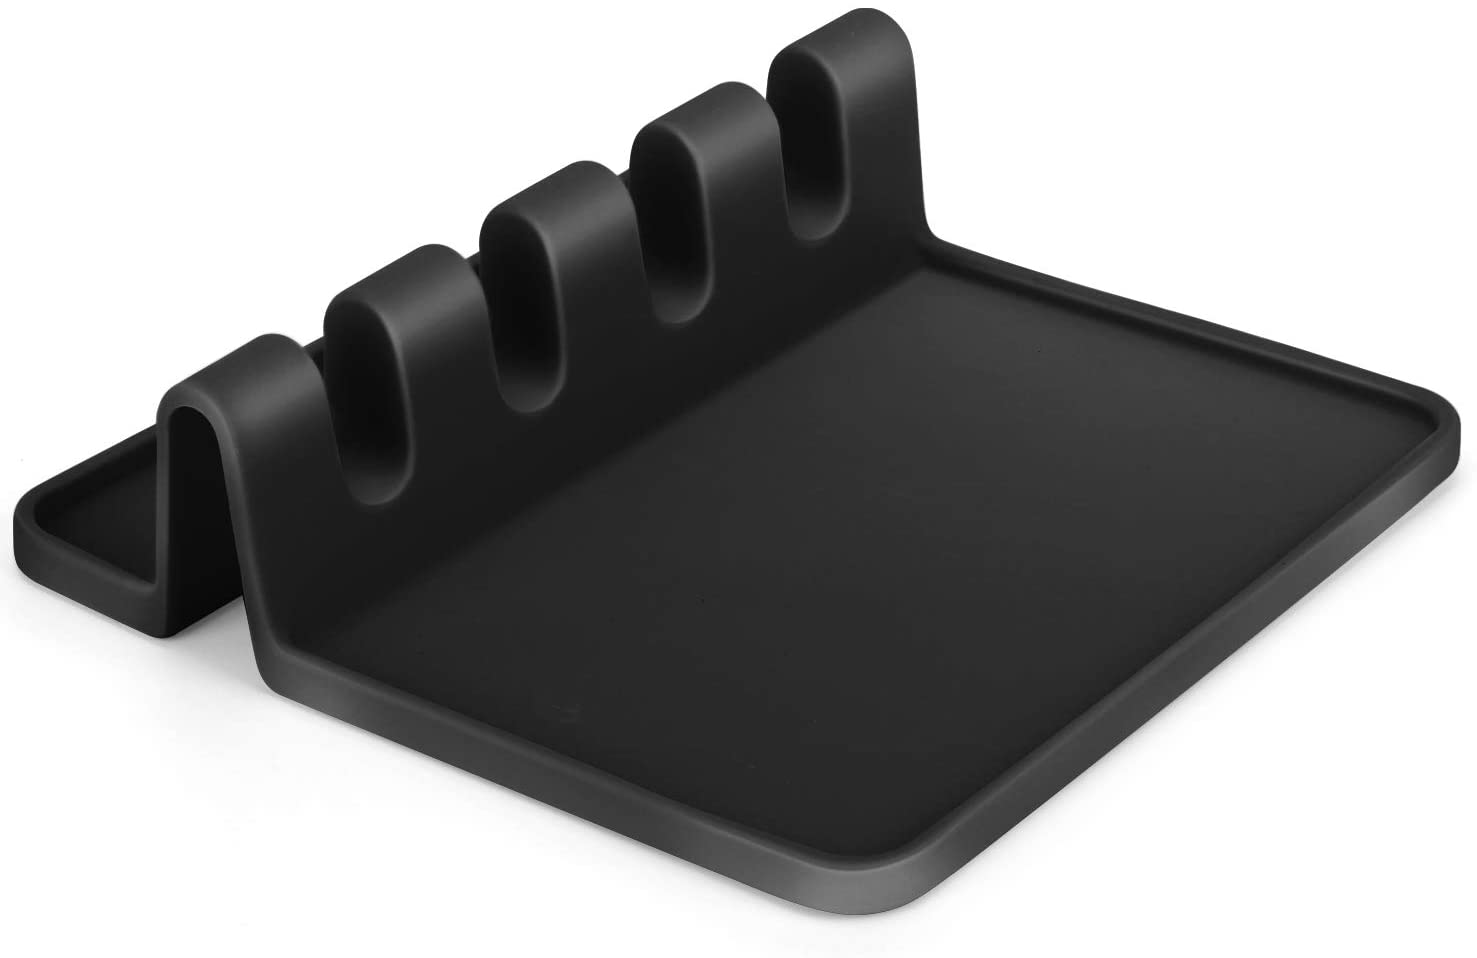 Silicone Utensil Rest with Drip Pad for Multiple Utensils,BPA-Free Spoon Rest & Spoon Holder for Stove Top,Kitchen Silicone Utensil Rest Holder for Spoons, Ladles, Tongs & More. (Black)